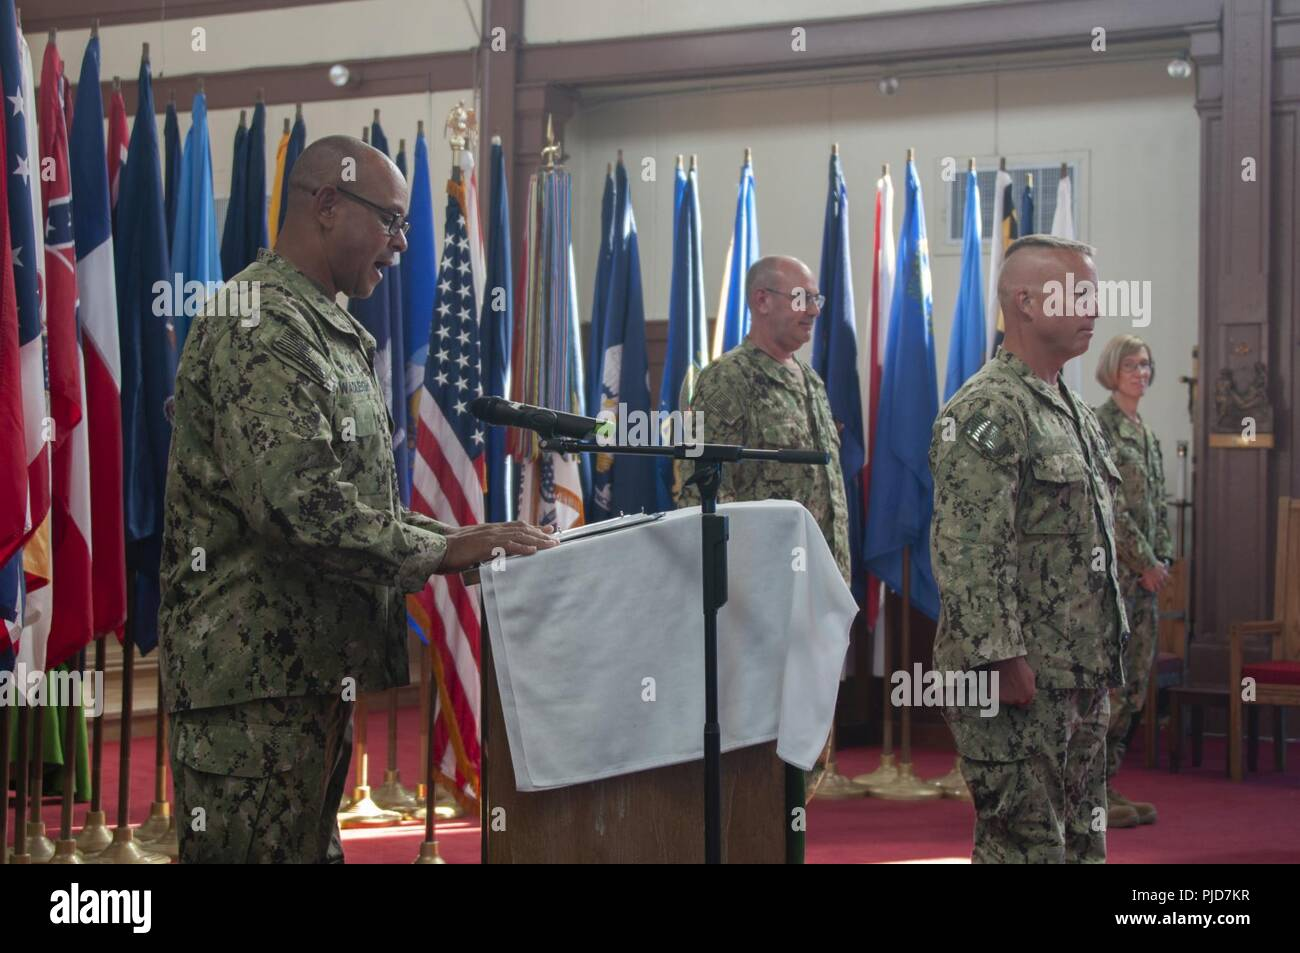 Captain Matthew Wadleigh, Commanding Officer of Port Security Unit 309 reads his orders during the Transfer of Authority ceremony held July 24, 2018. Rear Admiral Ring, commander, Joint Task Force Guantanamo presides over ceremony and joined with Commander Laila Grassley Commanding Officer of Port Security Unit 311.  Unlike a Change of Command a Transfer of Authority differs as the entire unit is relieved in lieu of only the commanding officer. U.S. Coast Guard Stock Photo